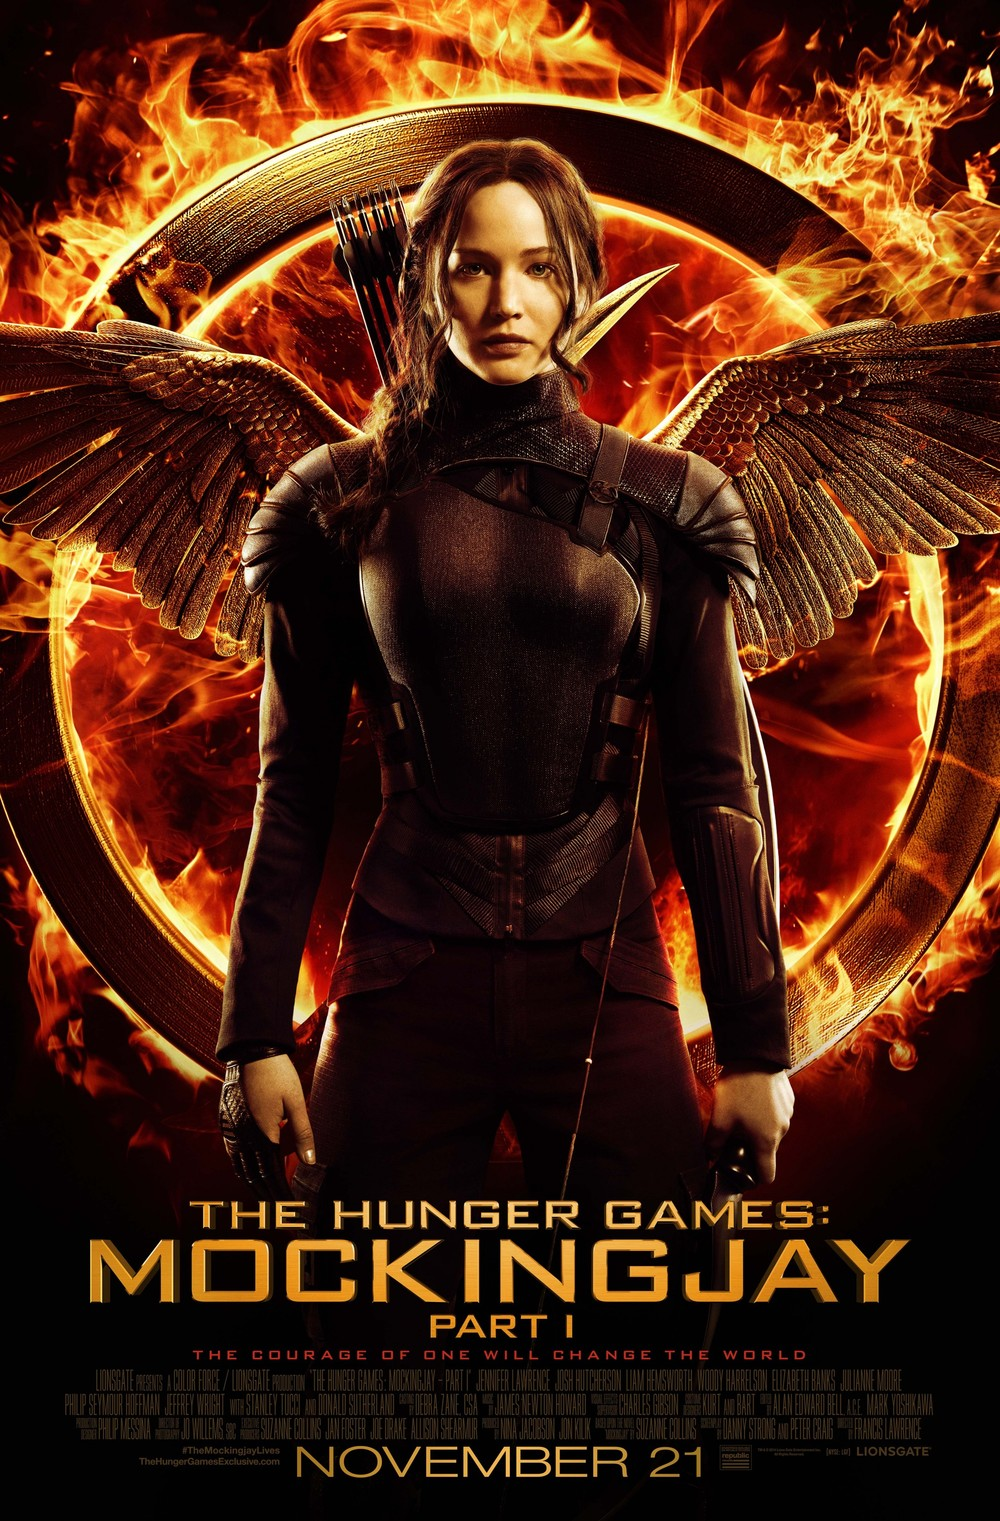 Mocking Jay Part 1 (2015).jpg